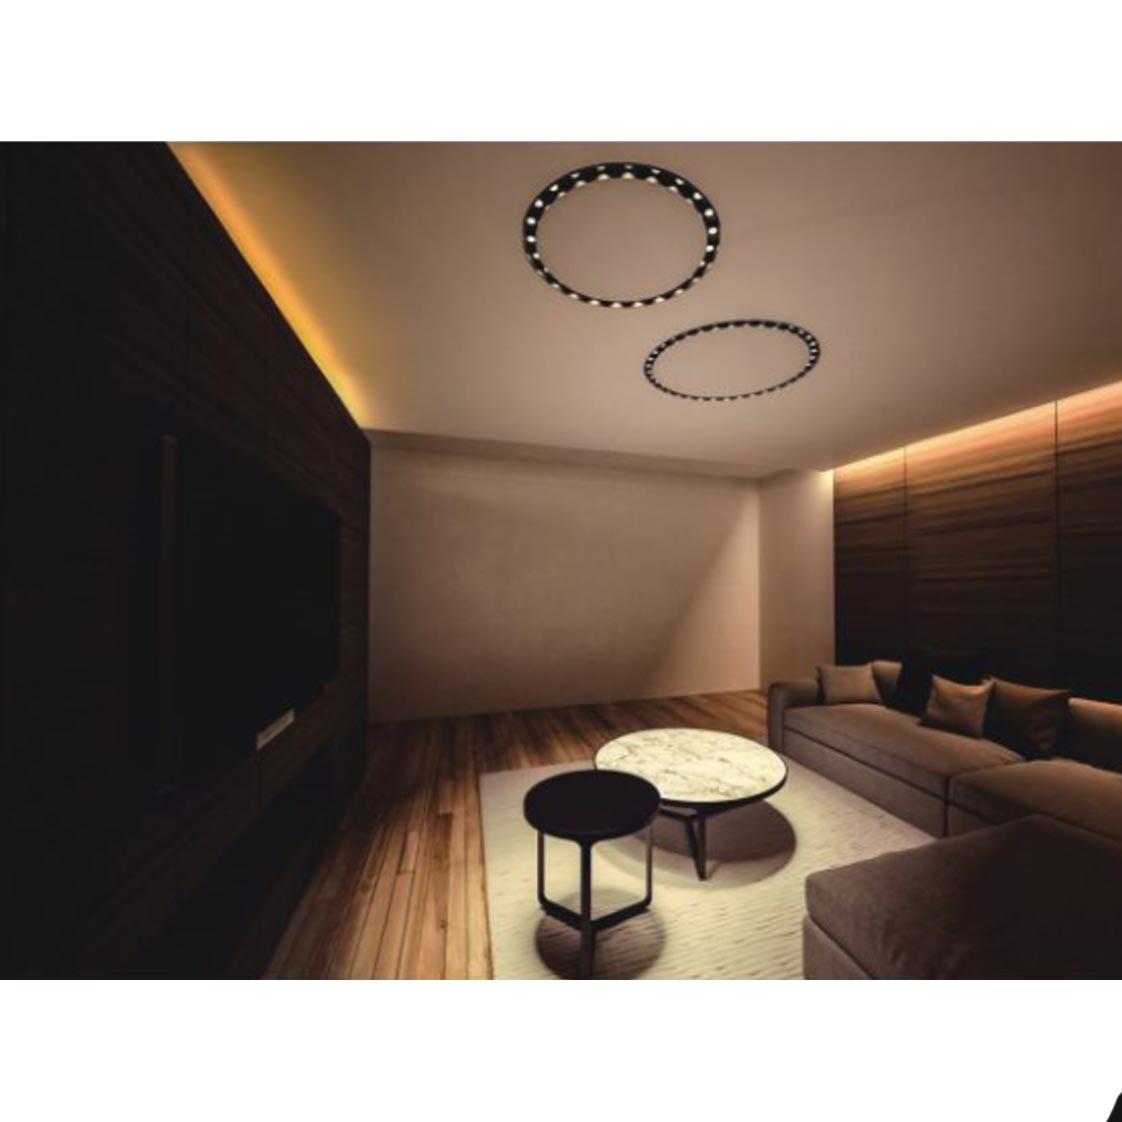 Ceiling Built In LED Lights Fixture 165517A